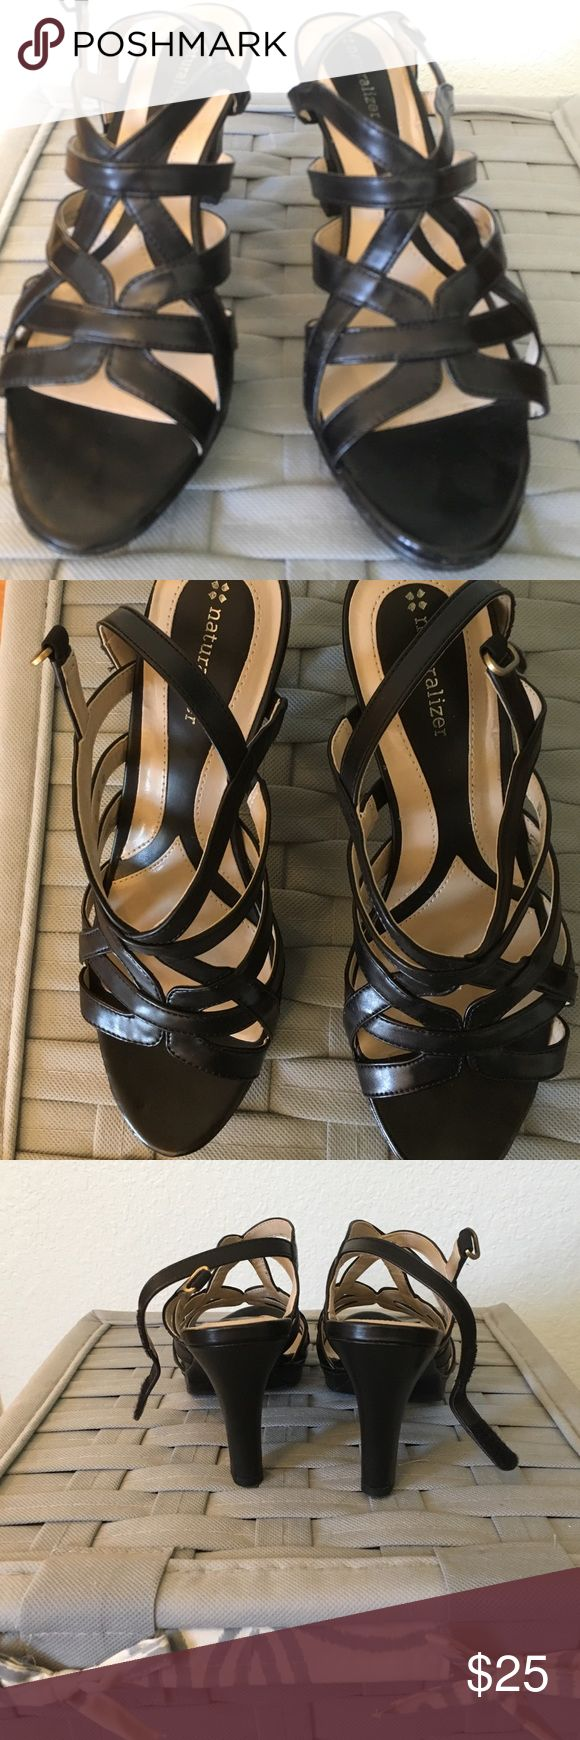 "Women's Size 9 Naturalizer Heeled Sandals Worn once, in perfect condition.  Very cute strapped 3.5"" heeled sandal. I cant't wear them due to weird arthritic feet. Naturalizer Shoes Sandals"